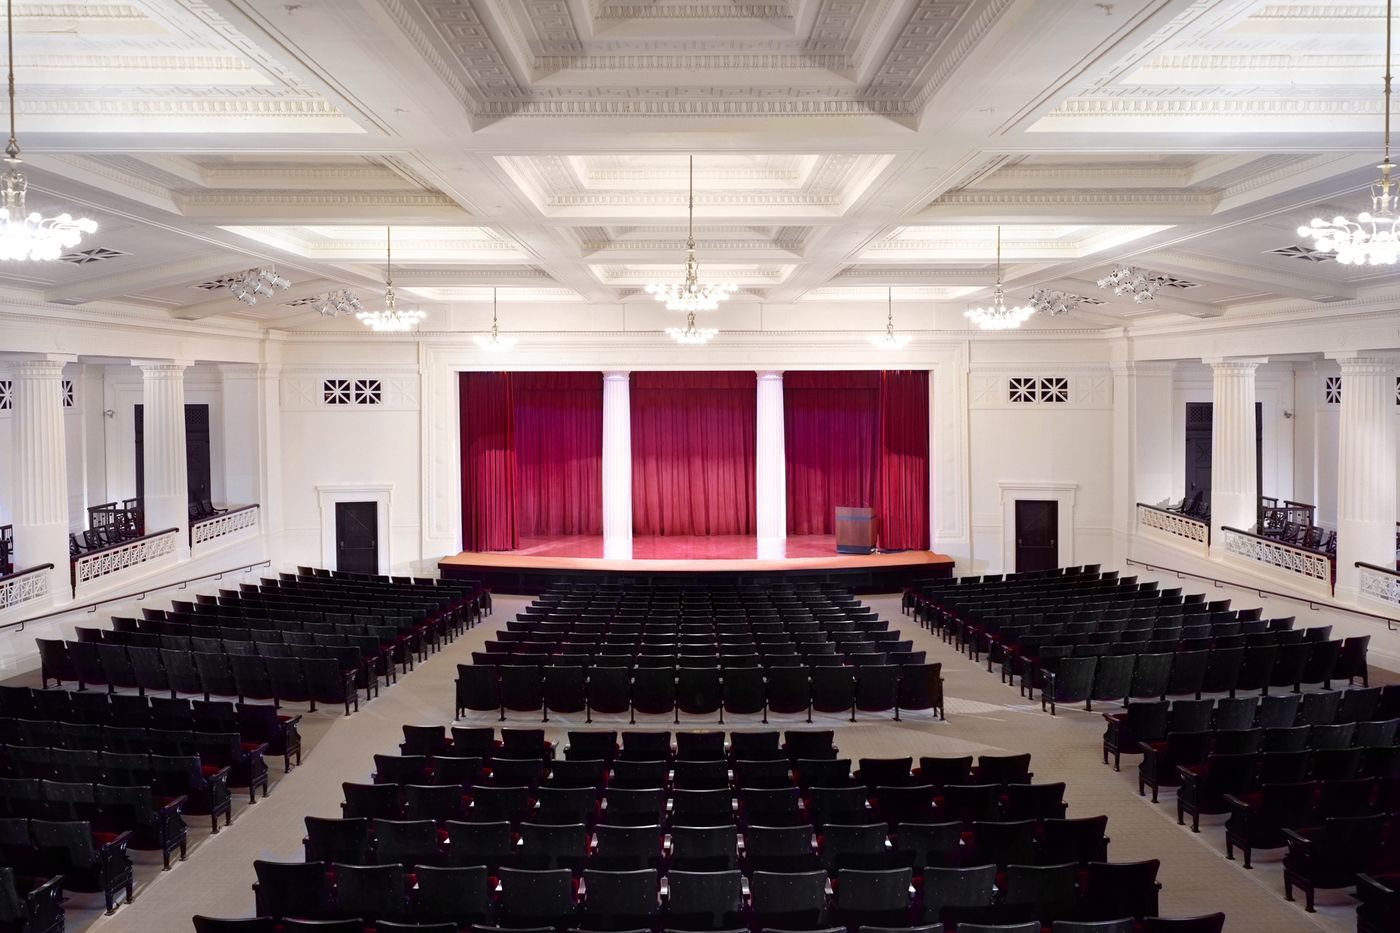 The James Simpson Theatre, from the rear looking towards the stage.